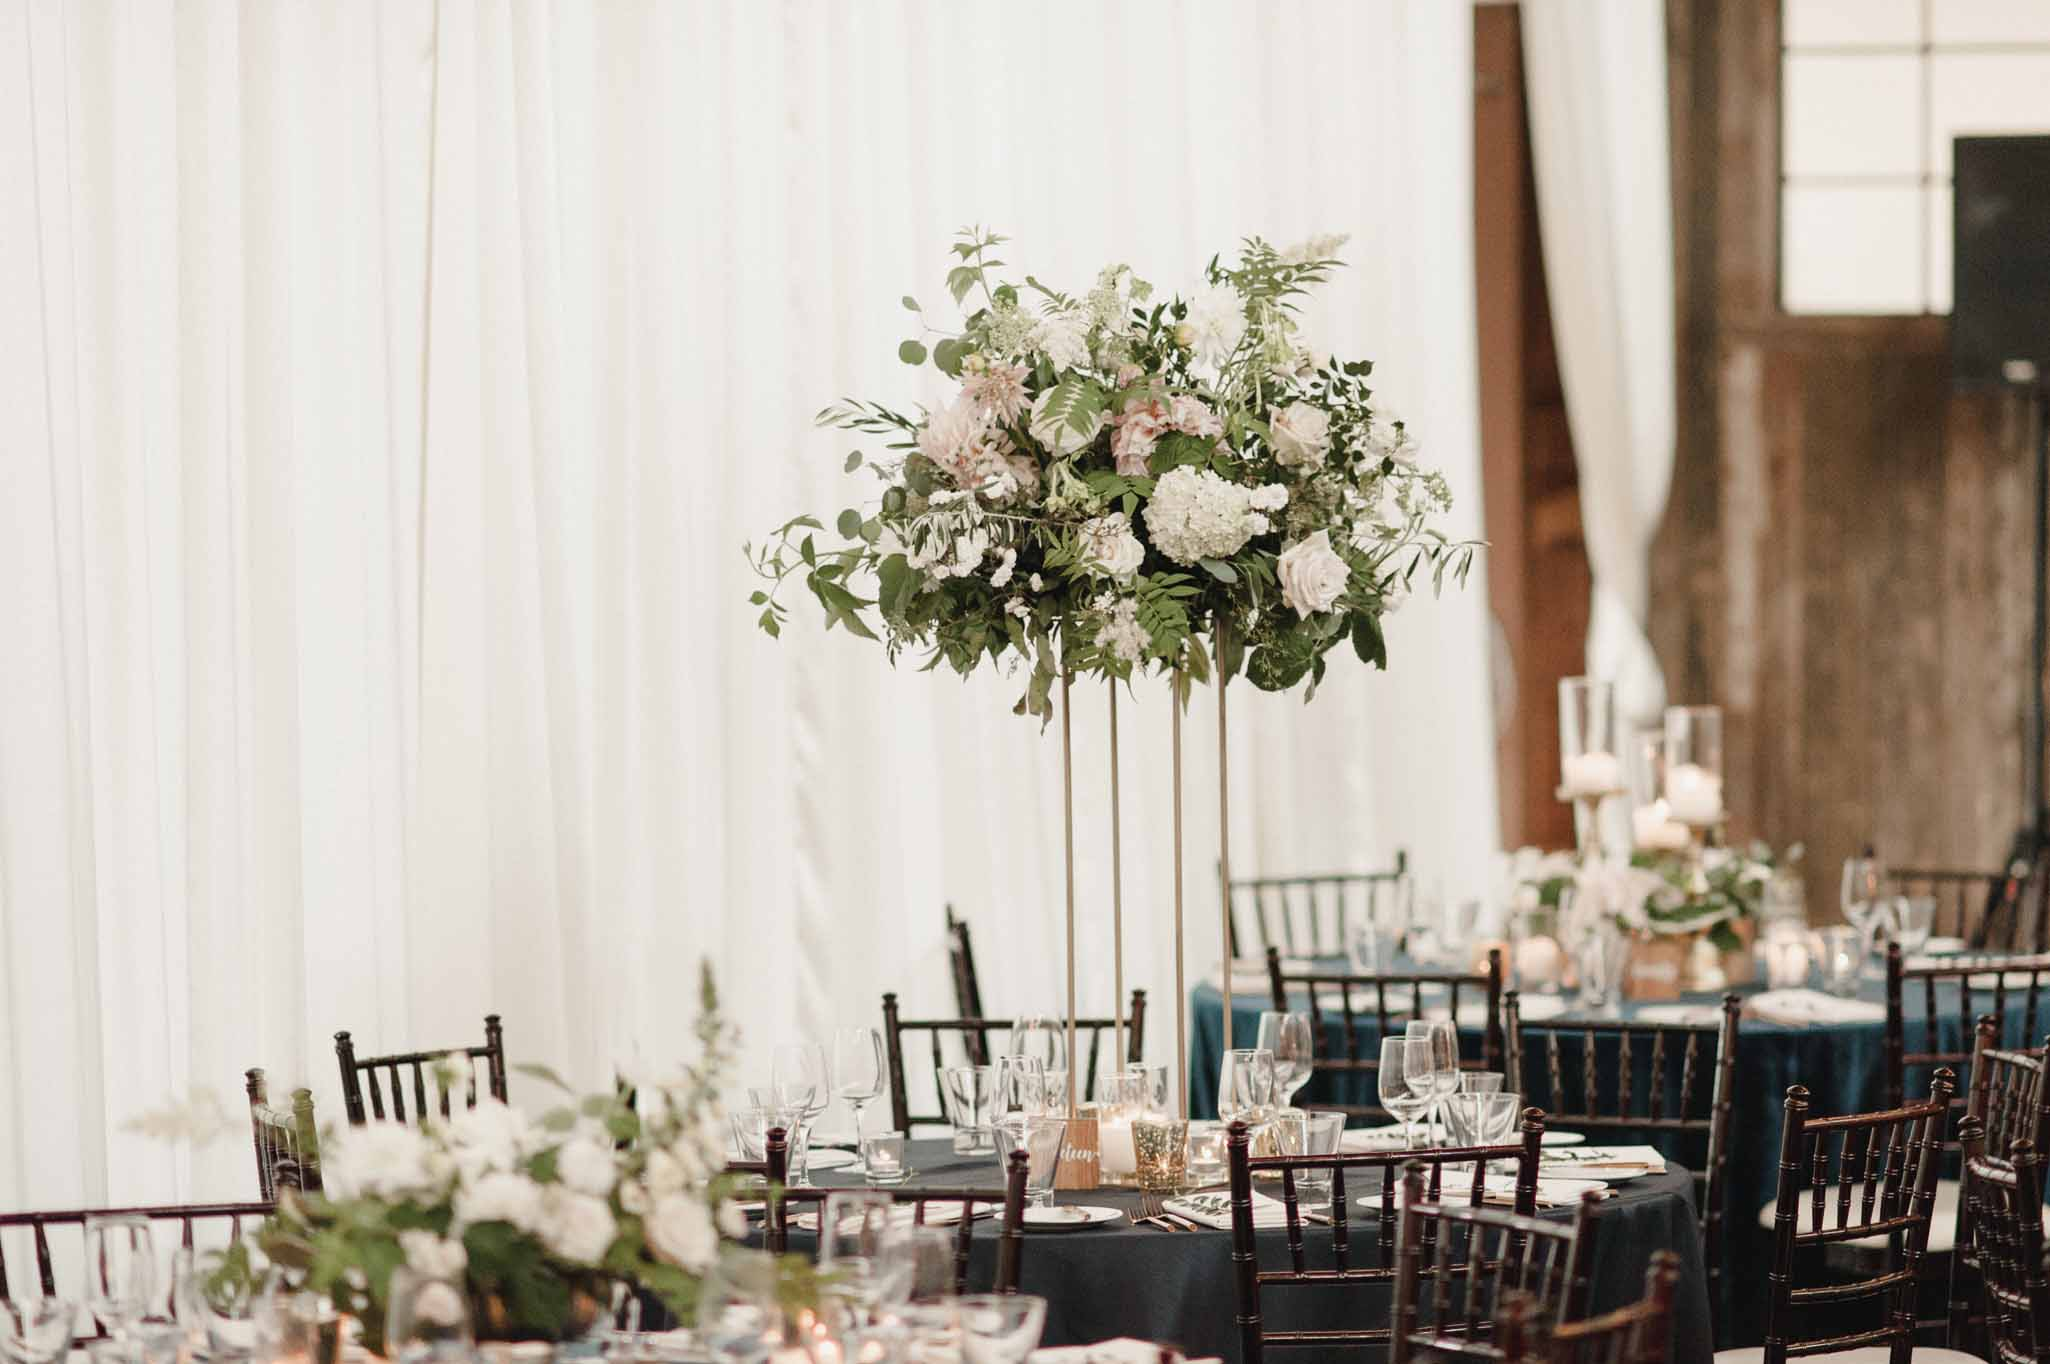 Tall centerpiece of white hydrangea, cafe au lait dahlias, roses, and lots of greenery, on gold harlow stand, designed by wedding designer Flora Nova Design in Seattle